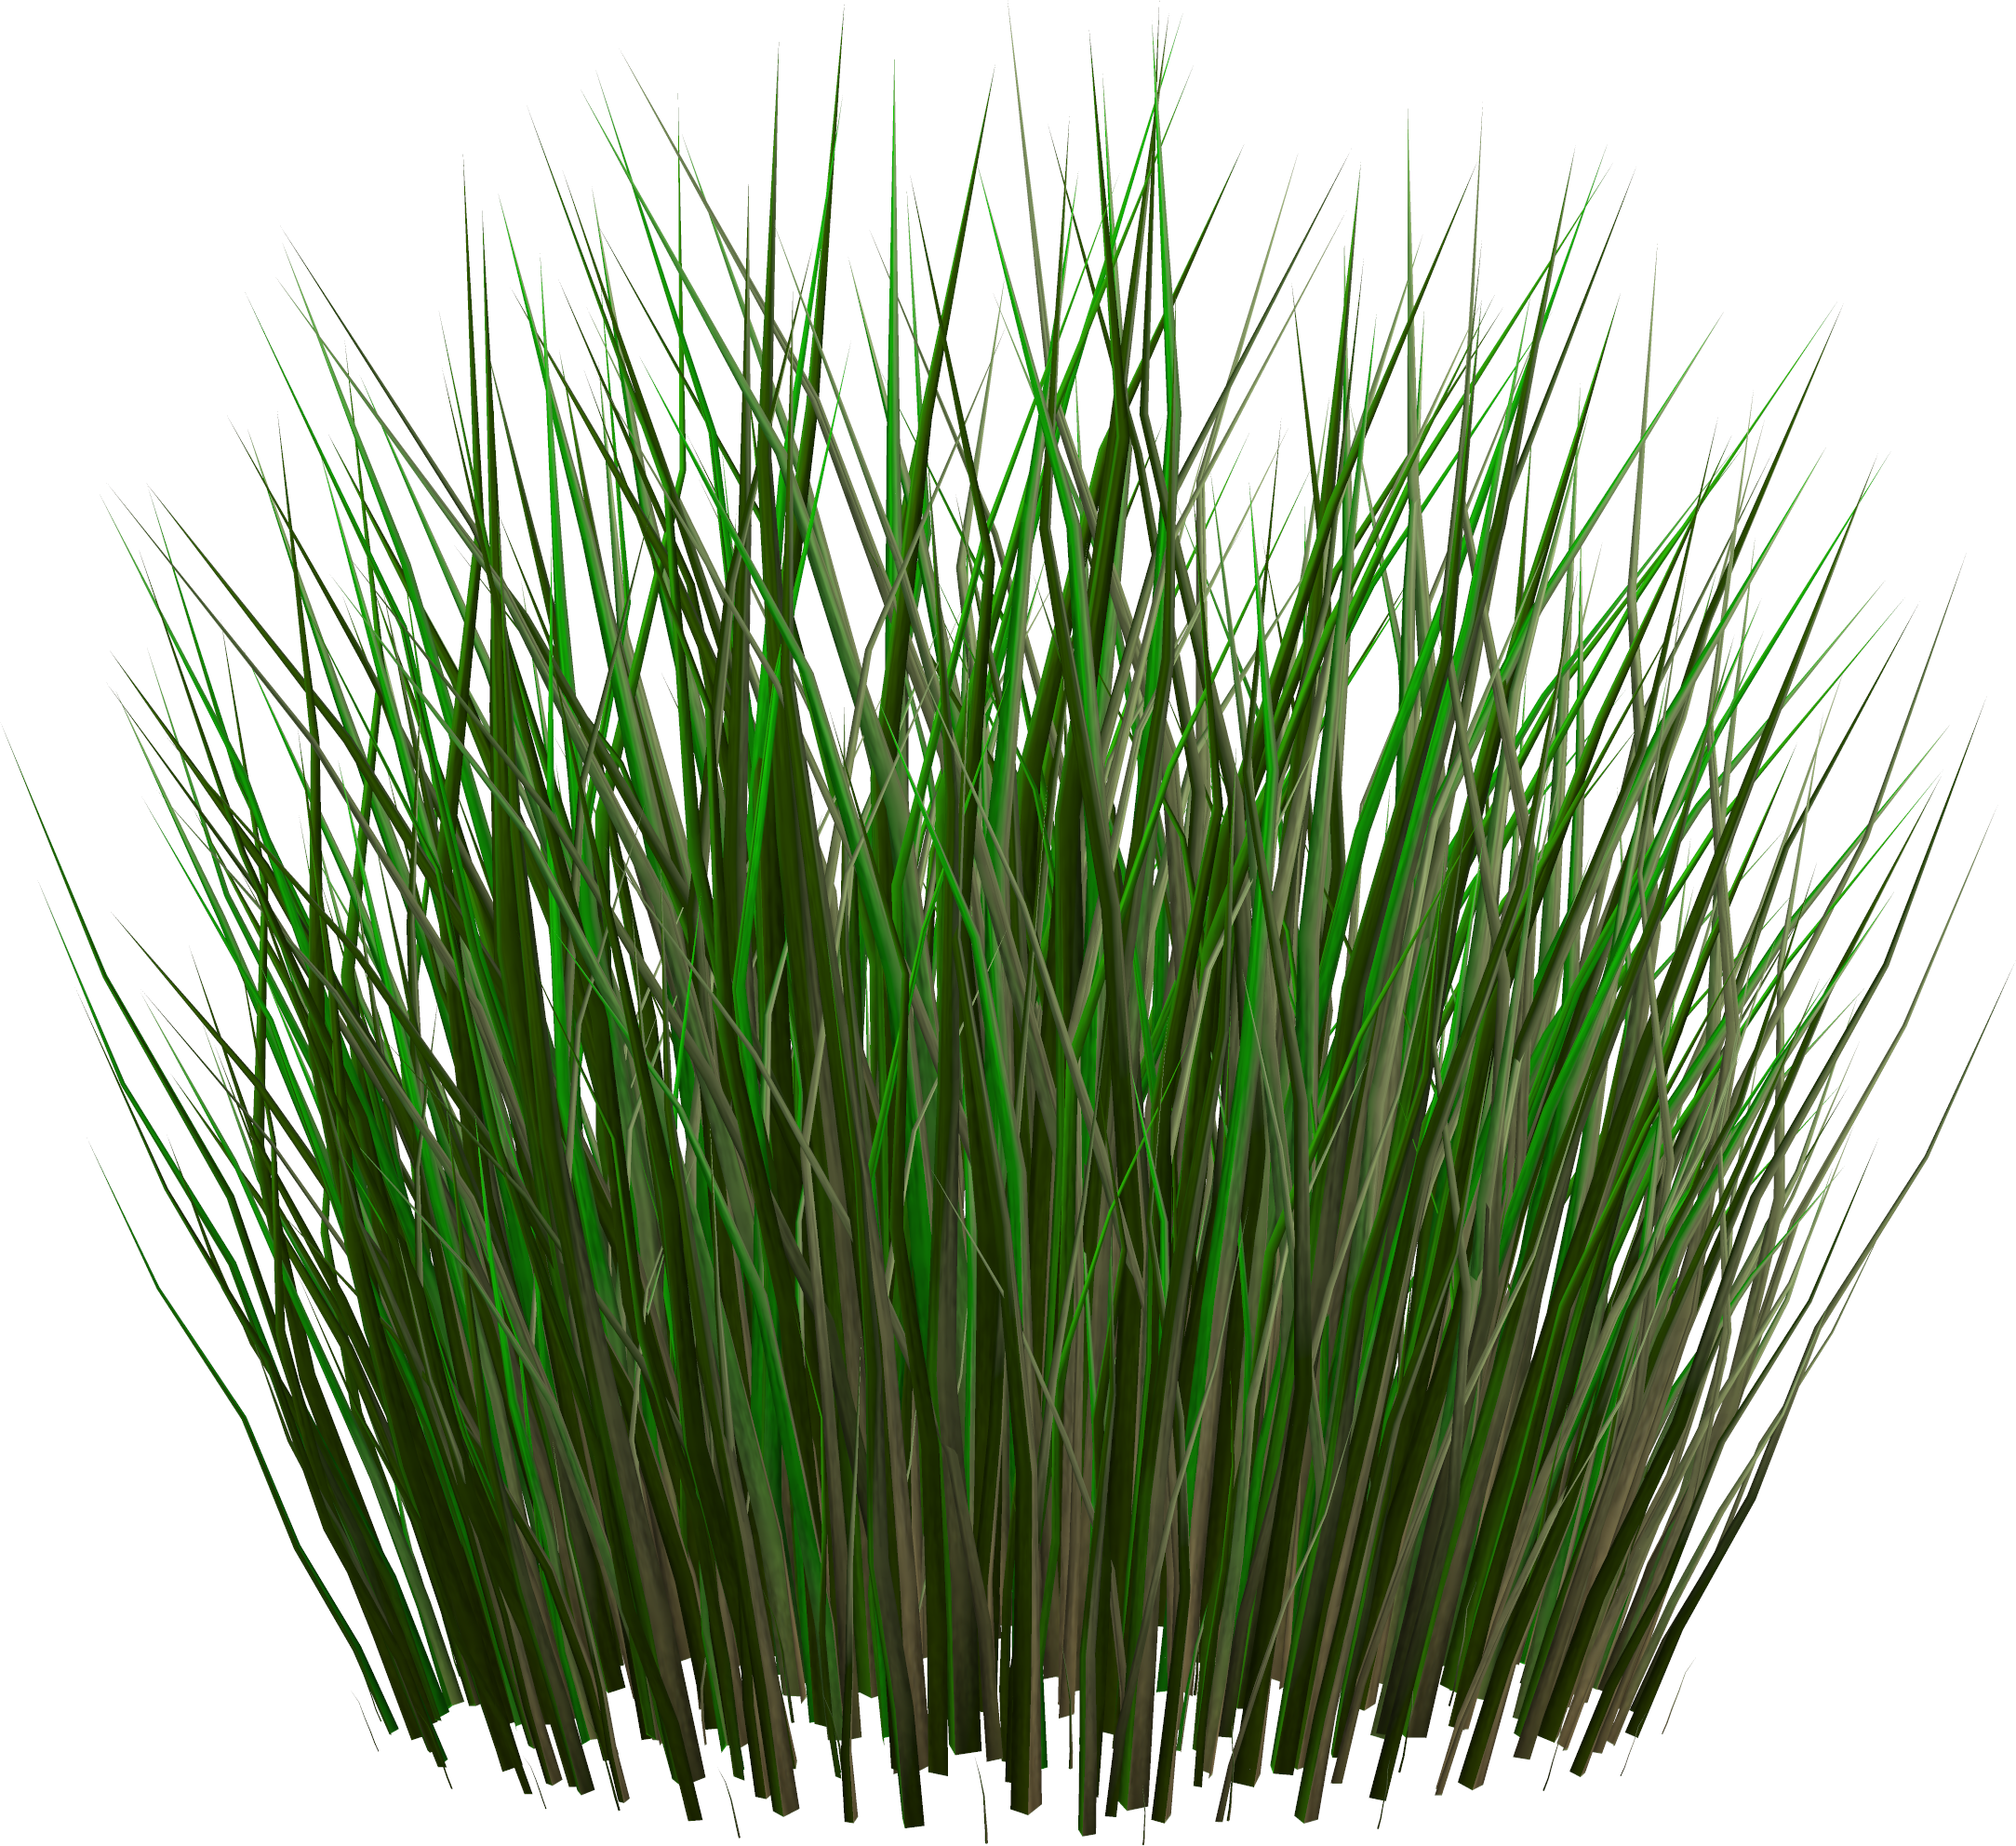 Grass png image green grass png picture Long grass plants